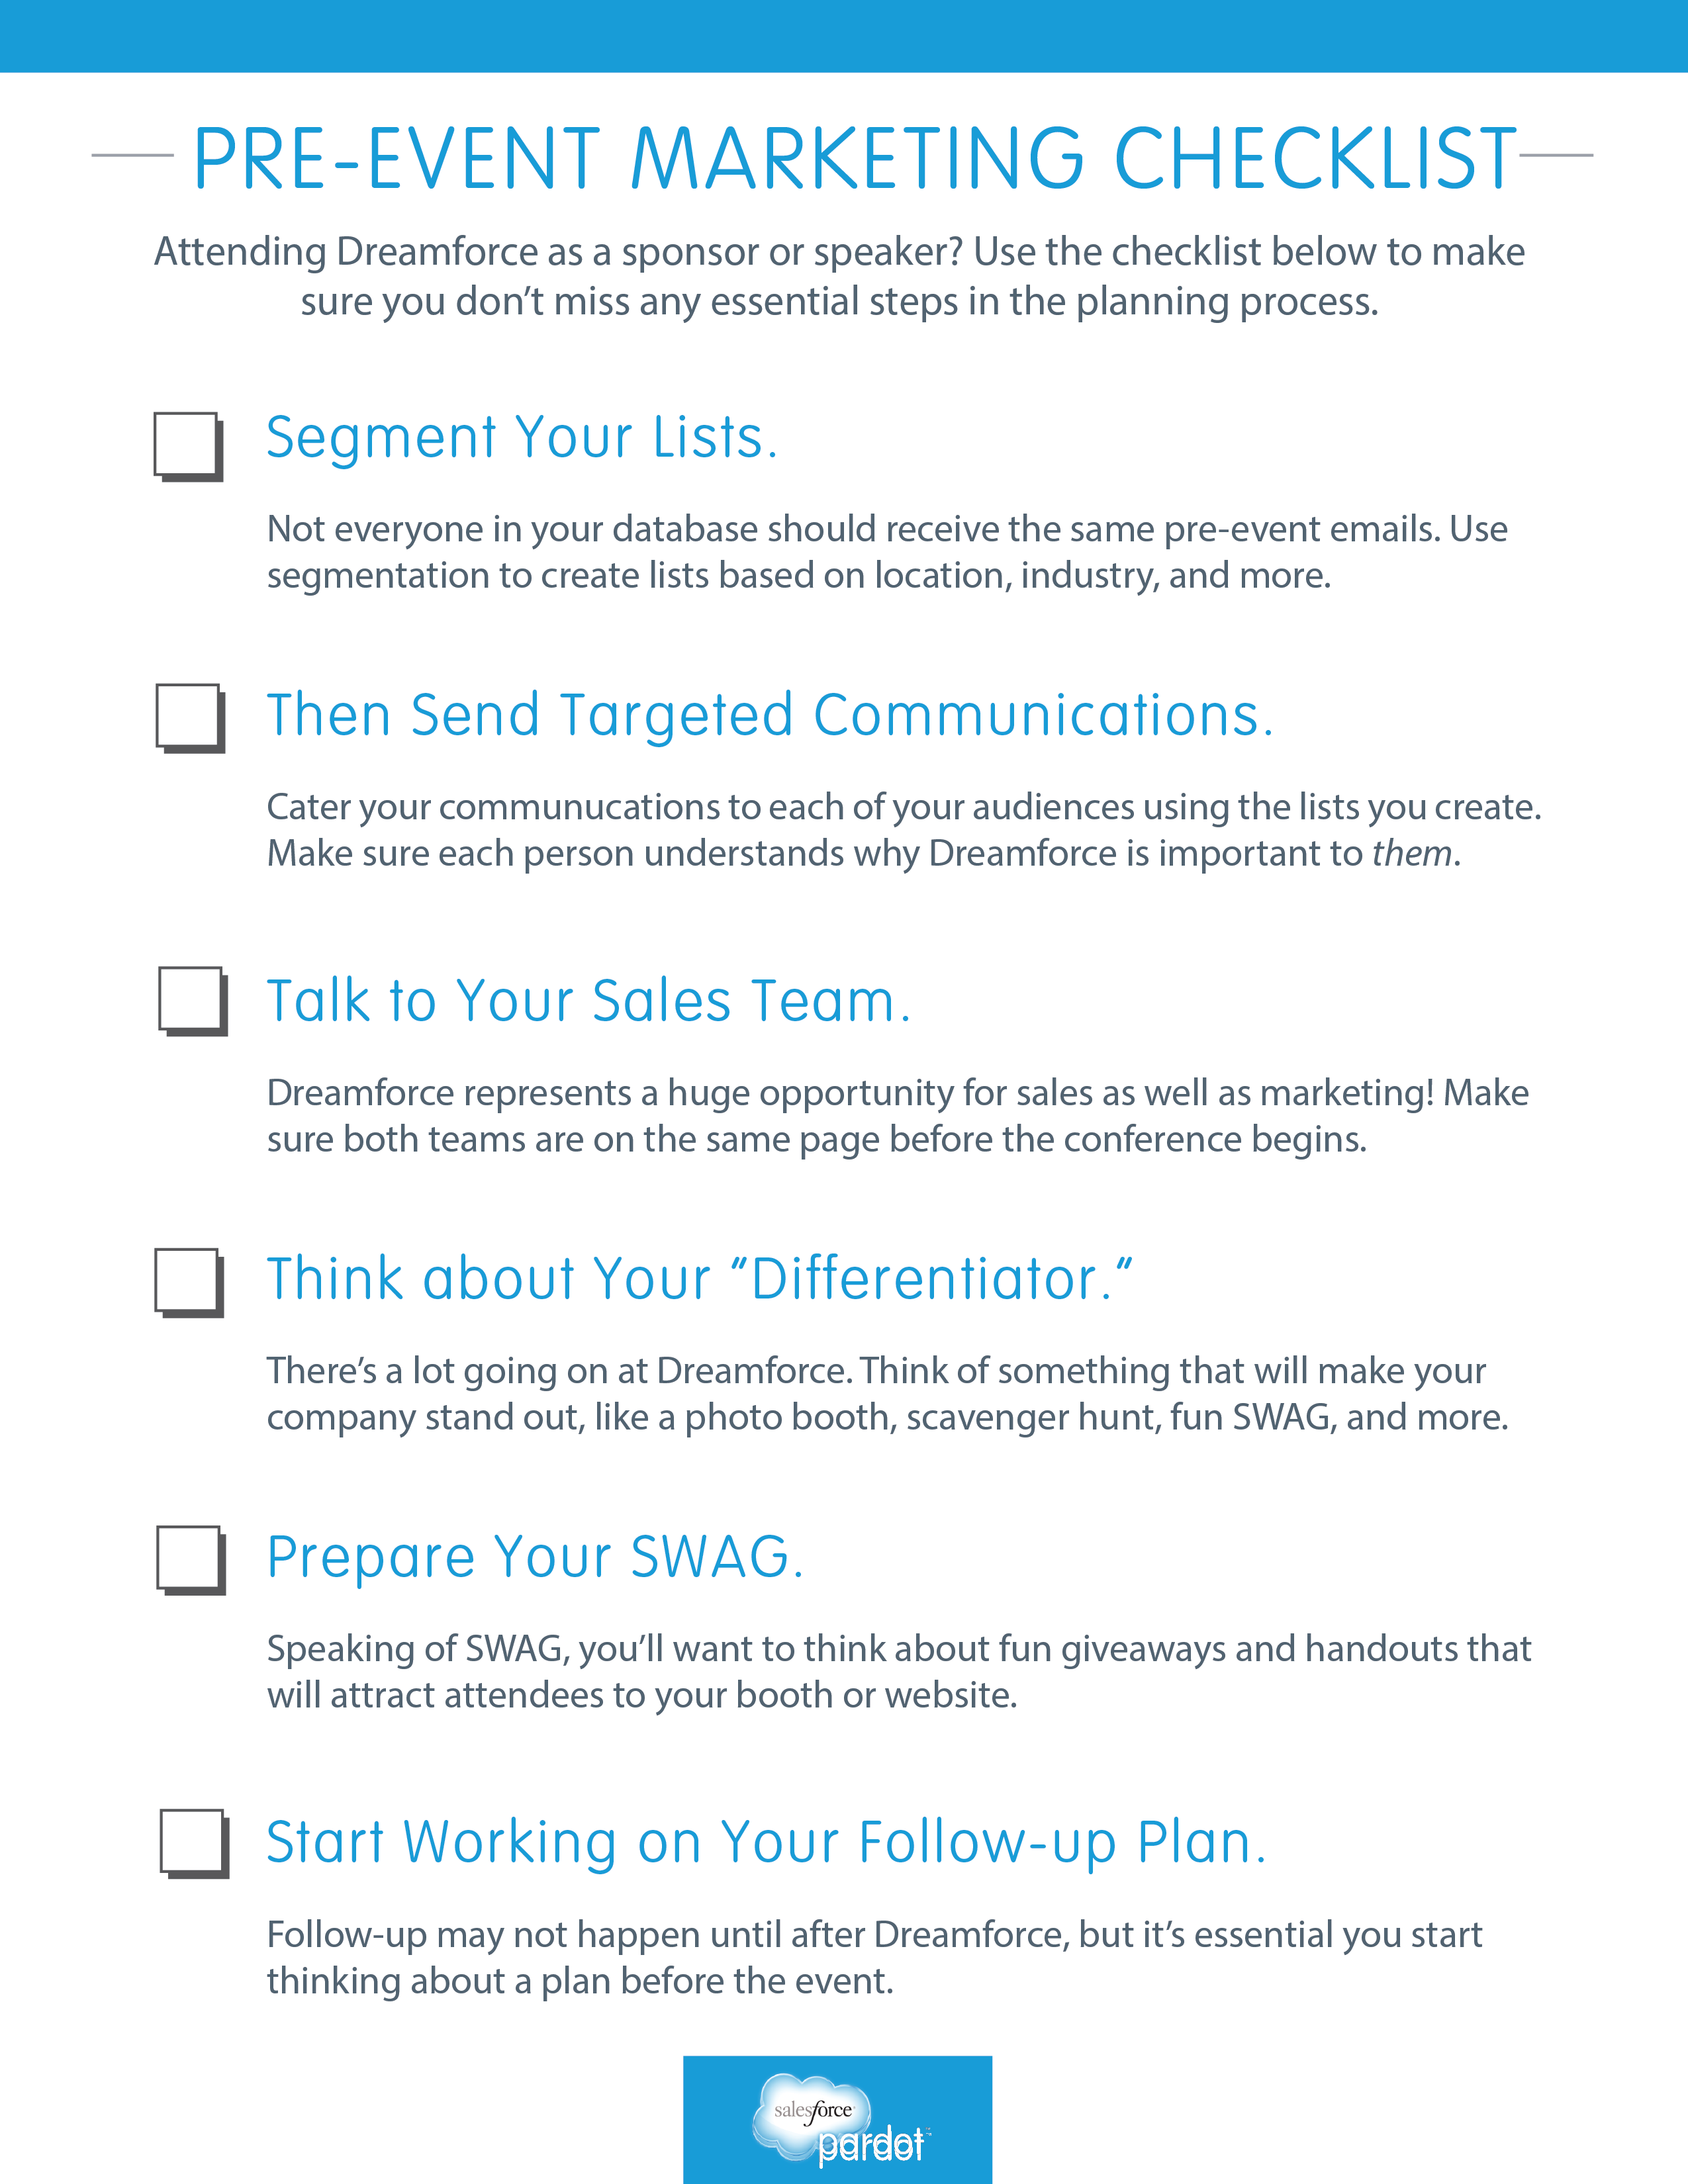 PreEvent Marketing Checklist  Marketers Use This Checklist To